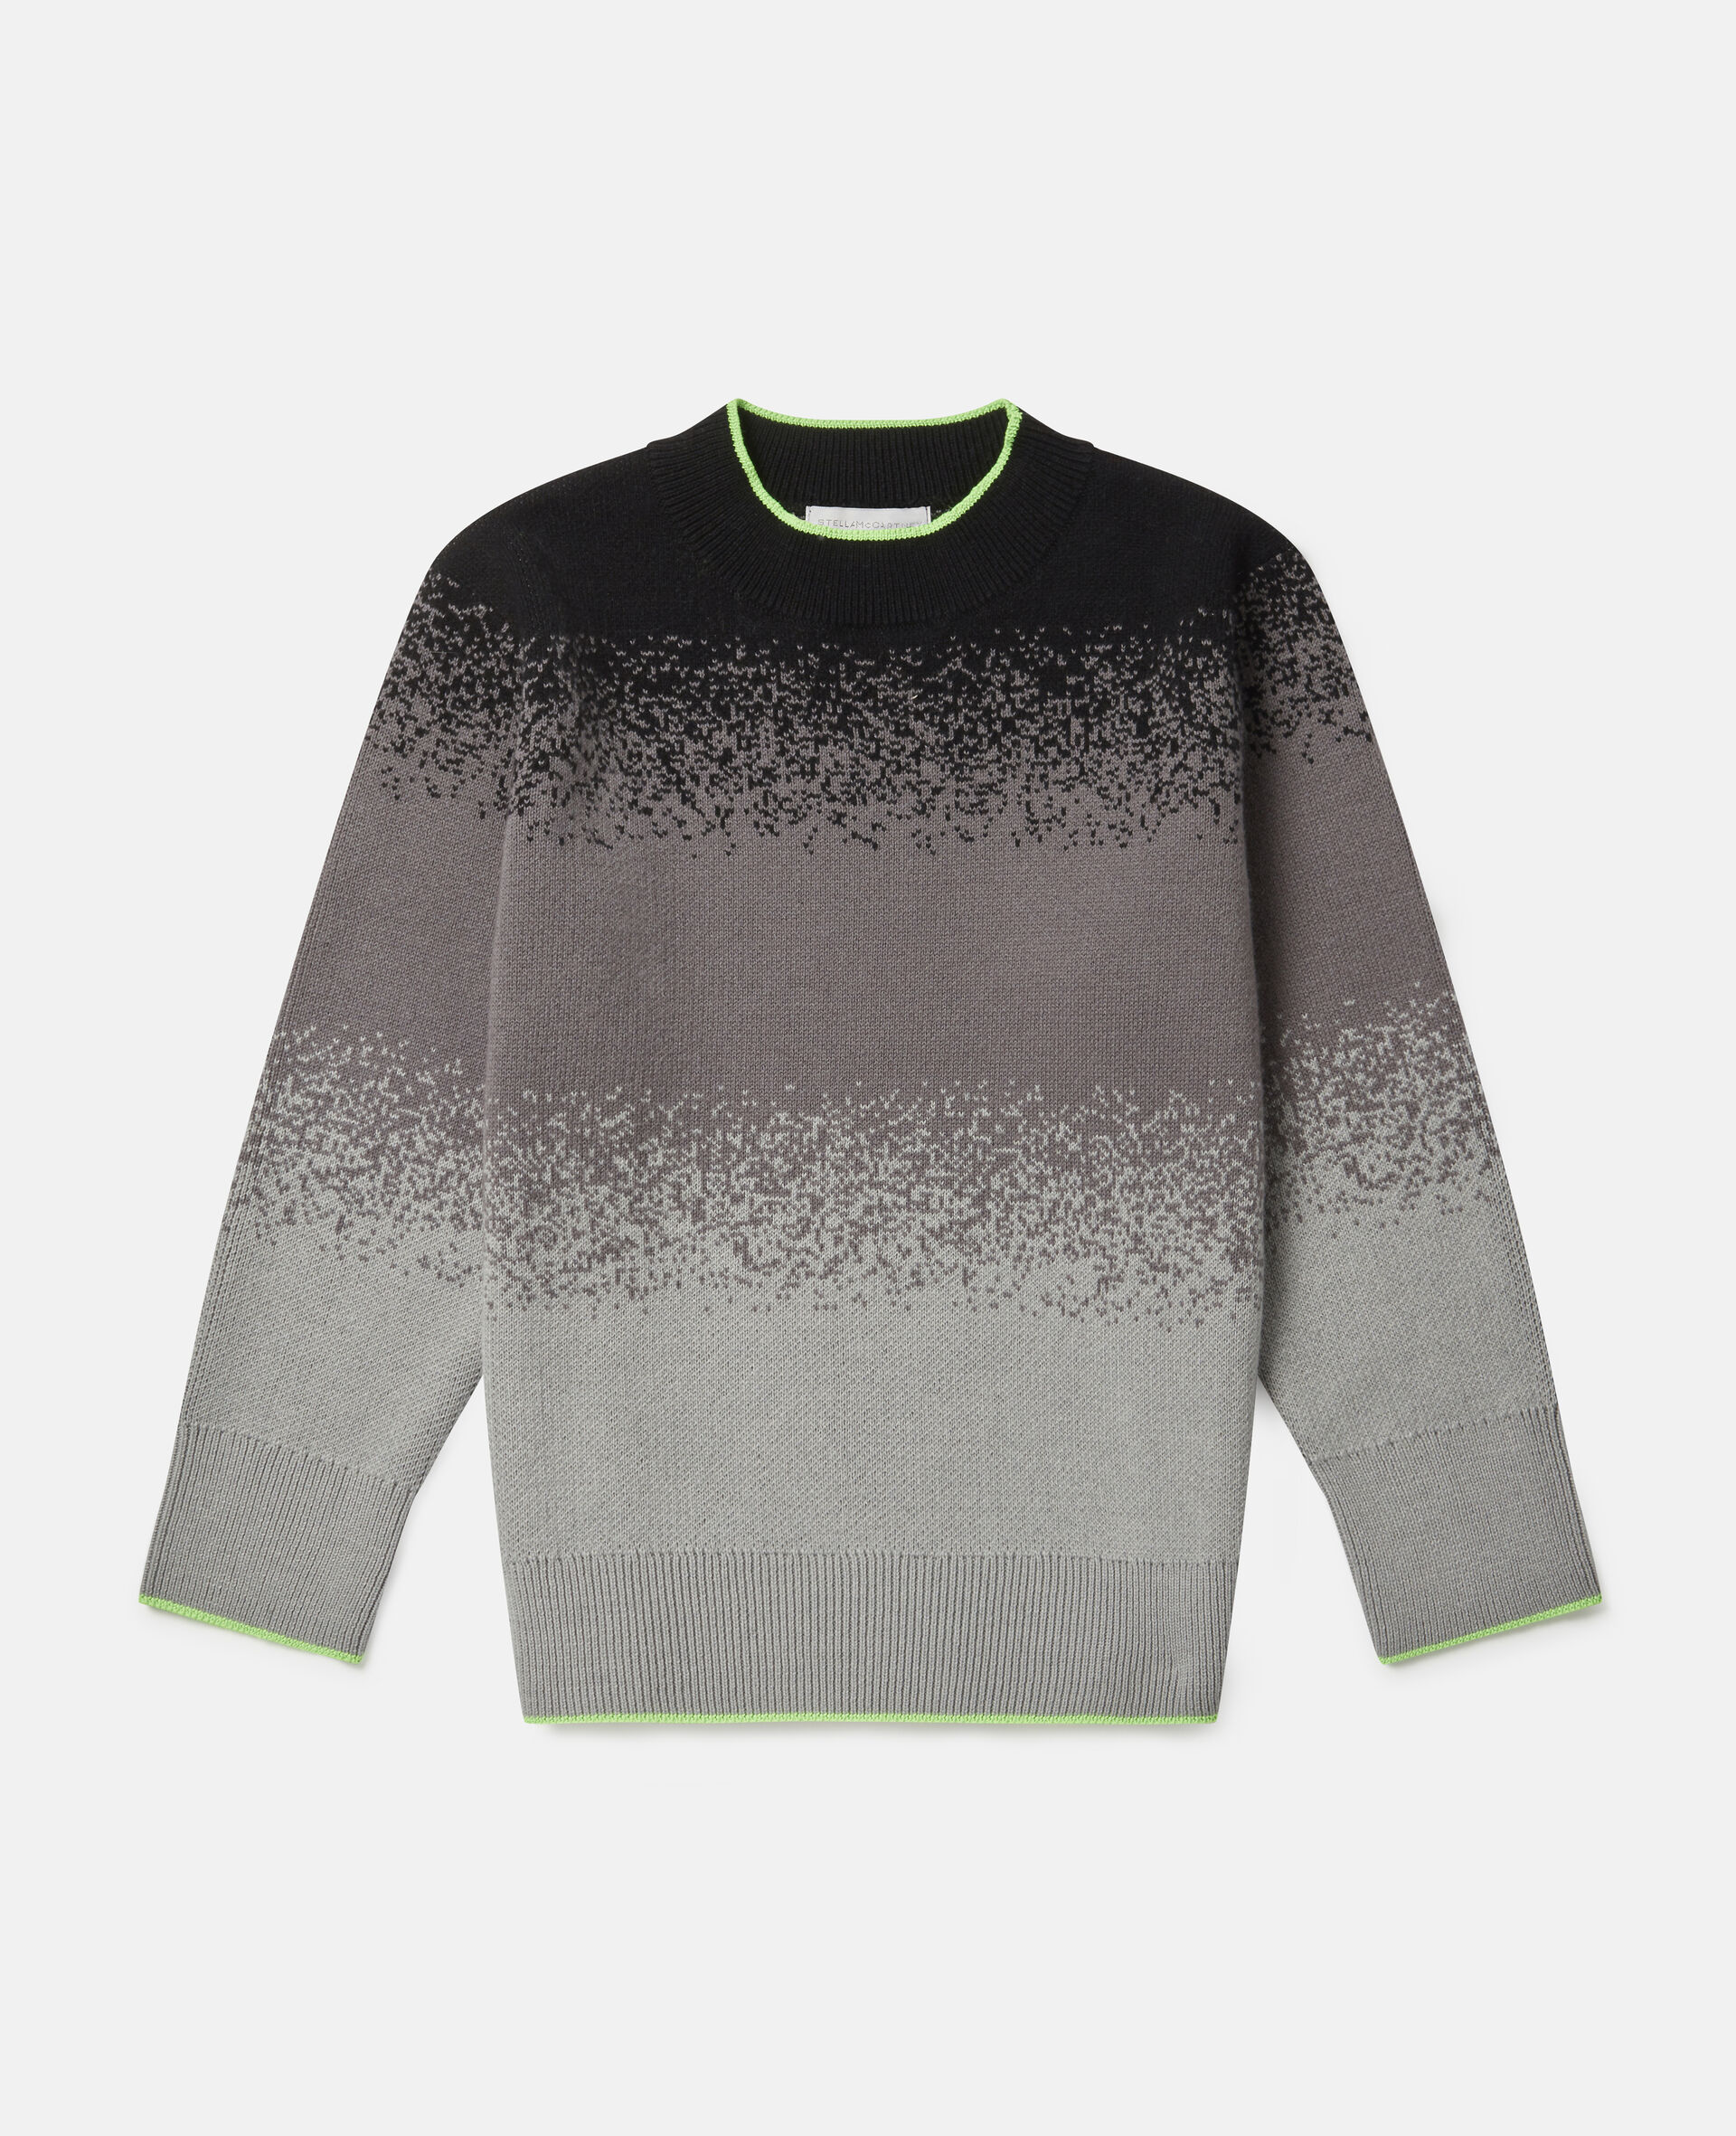 Spray Painted Effect Oversized Knit Jumper-Grey-large image number 0